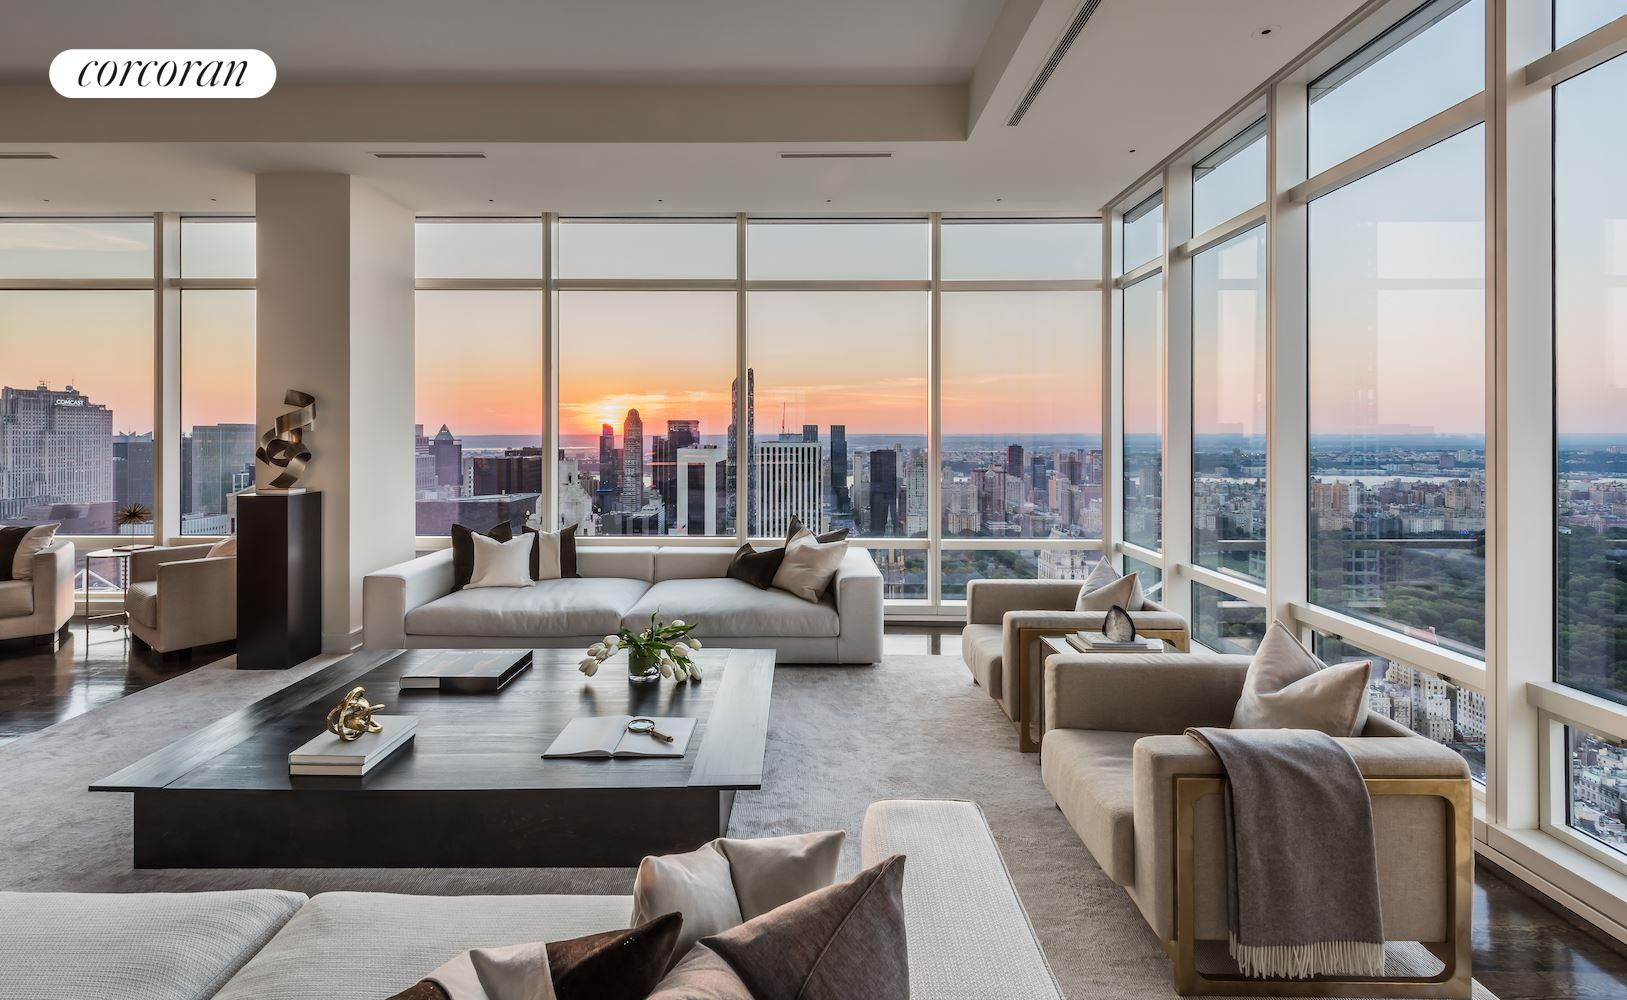 Corcoran 151 east 58th street apt ph53w upper east for Upper east side apartments for sale nyc